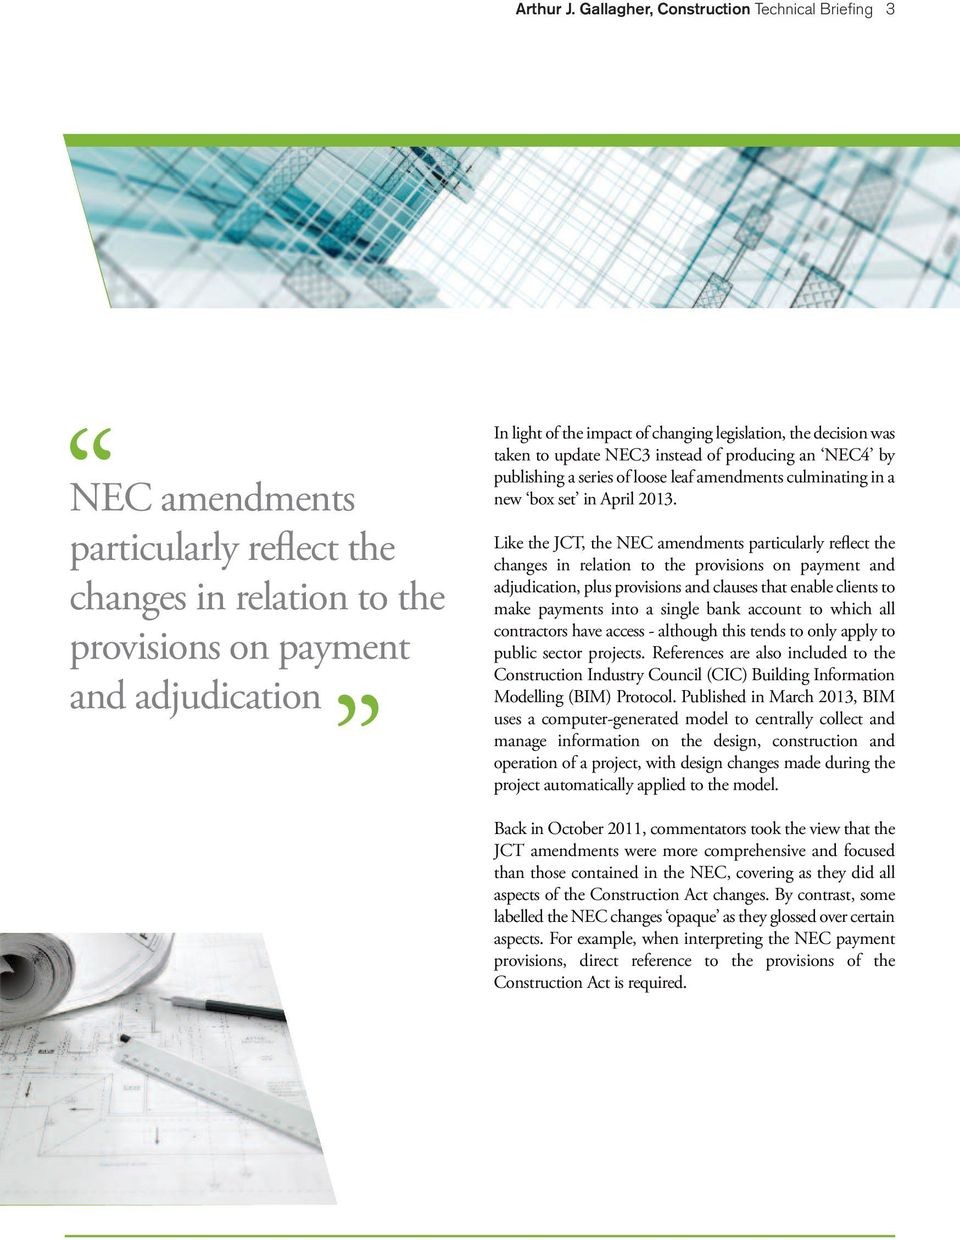 the decision was taken to update NEC3 instead of producing an NEC4 by publishing a series of loose leaf amendments culminating in a new box set in April 2013.